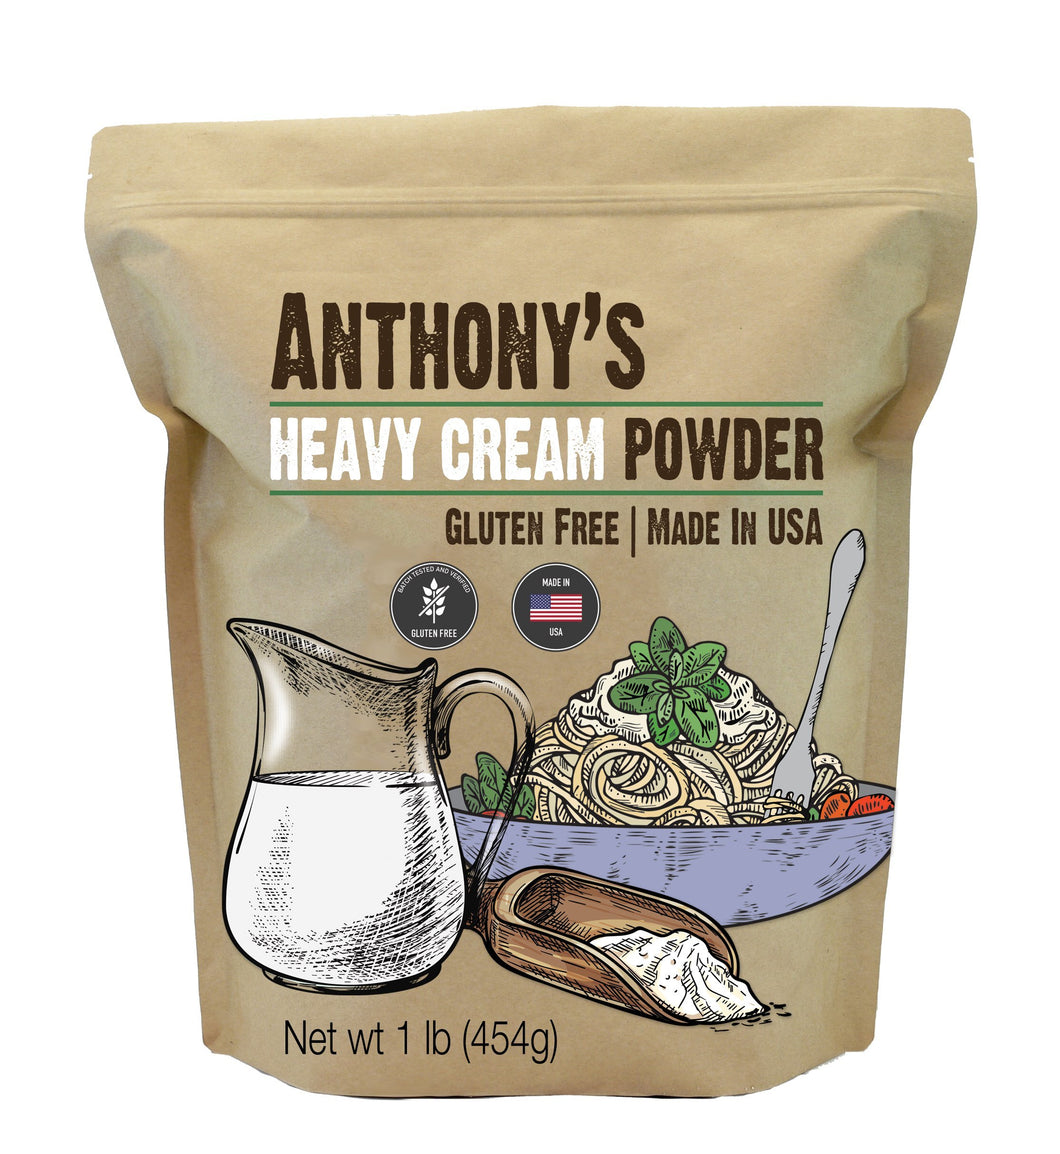 Heavy Cream Powder by Anthony's Goods, 1 lb